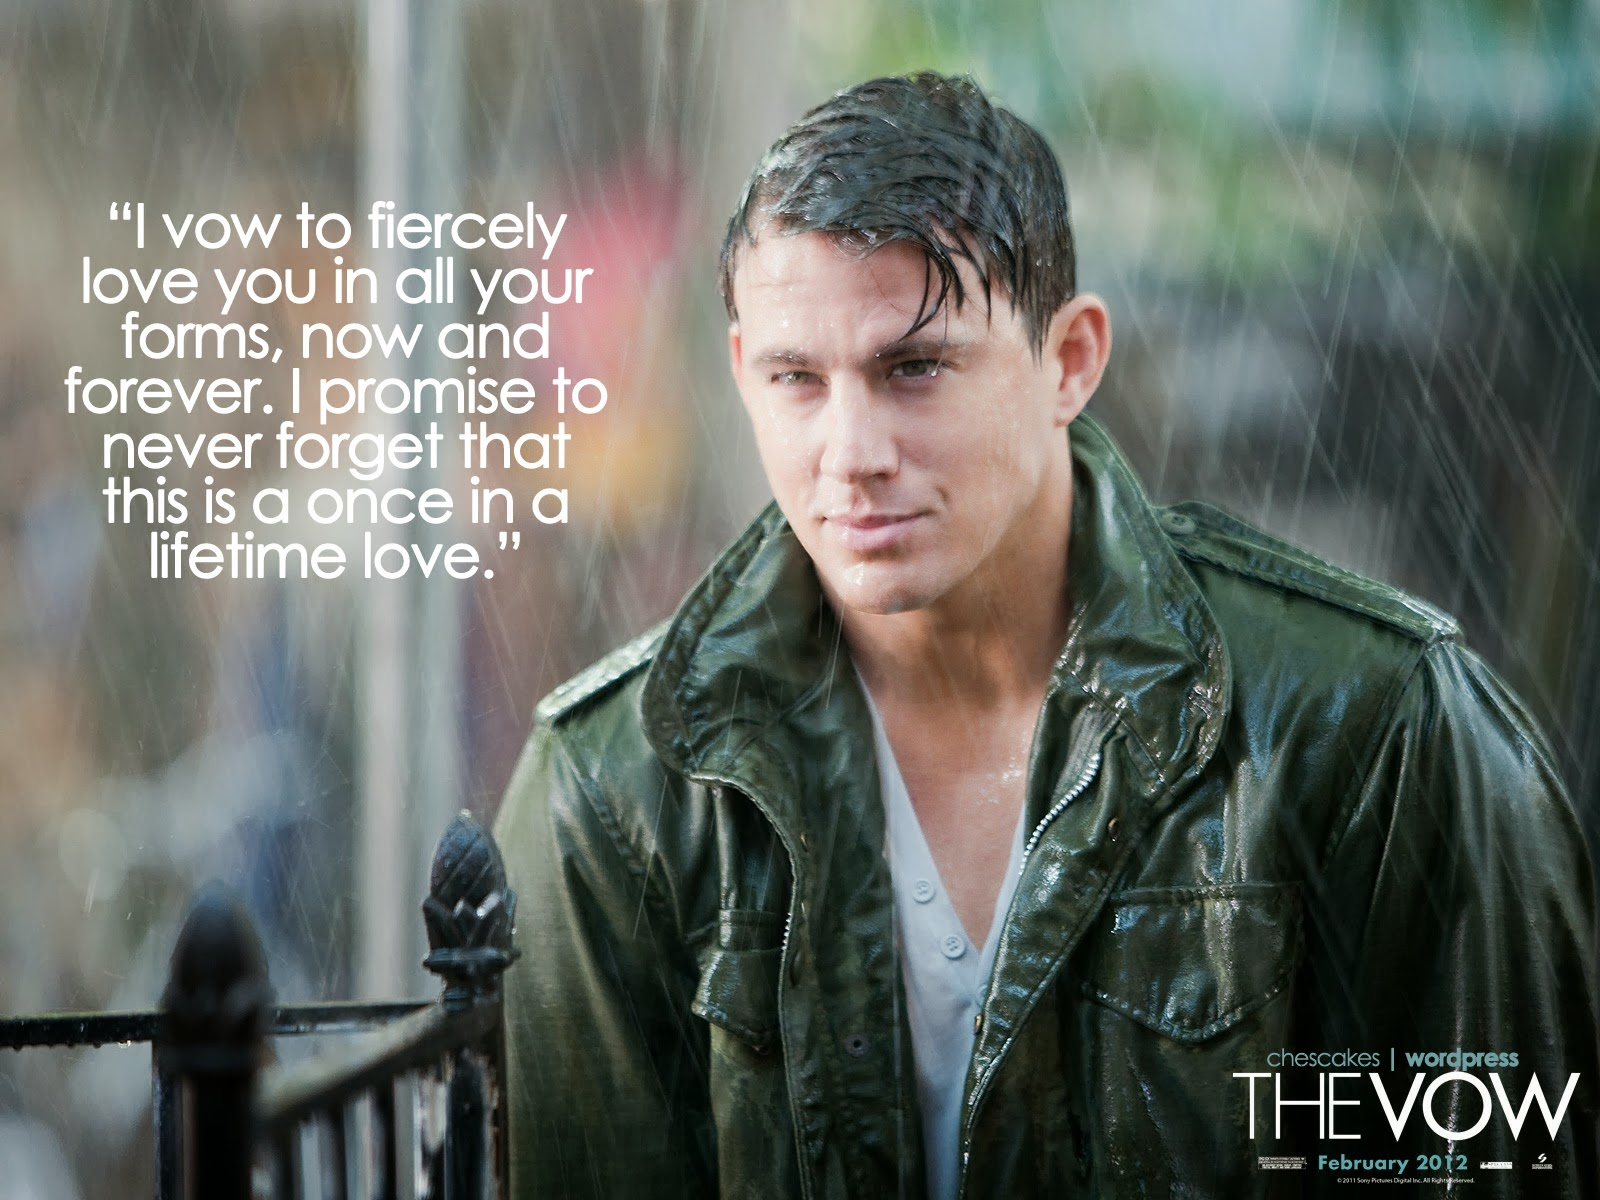 Rainbows Lace The Vow A Story Of True Love